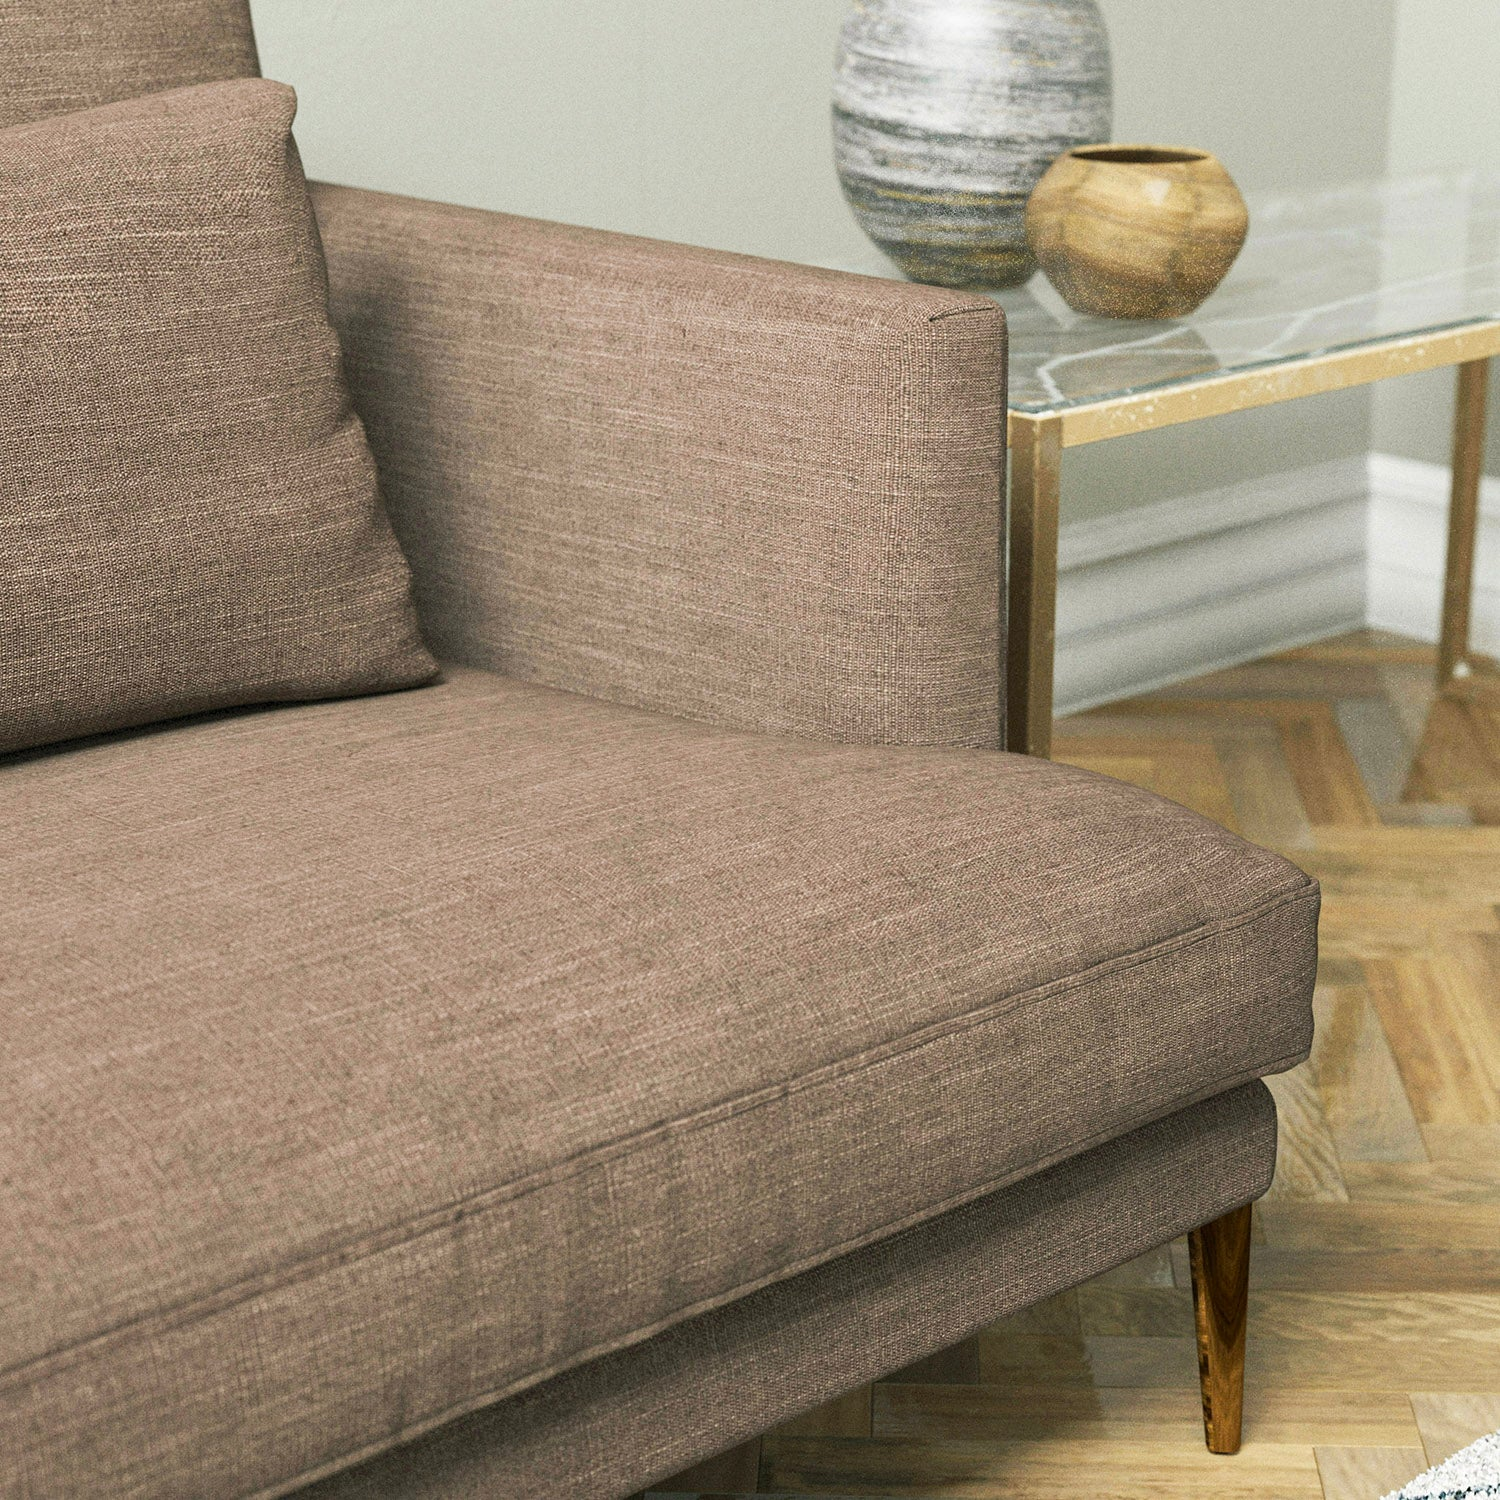 Sofa upholstered in a mink coloured linen blend fabric